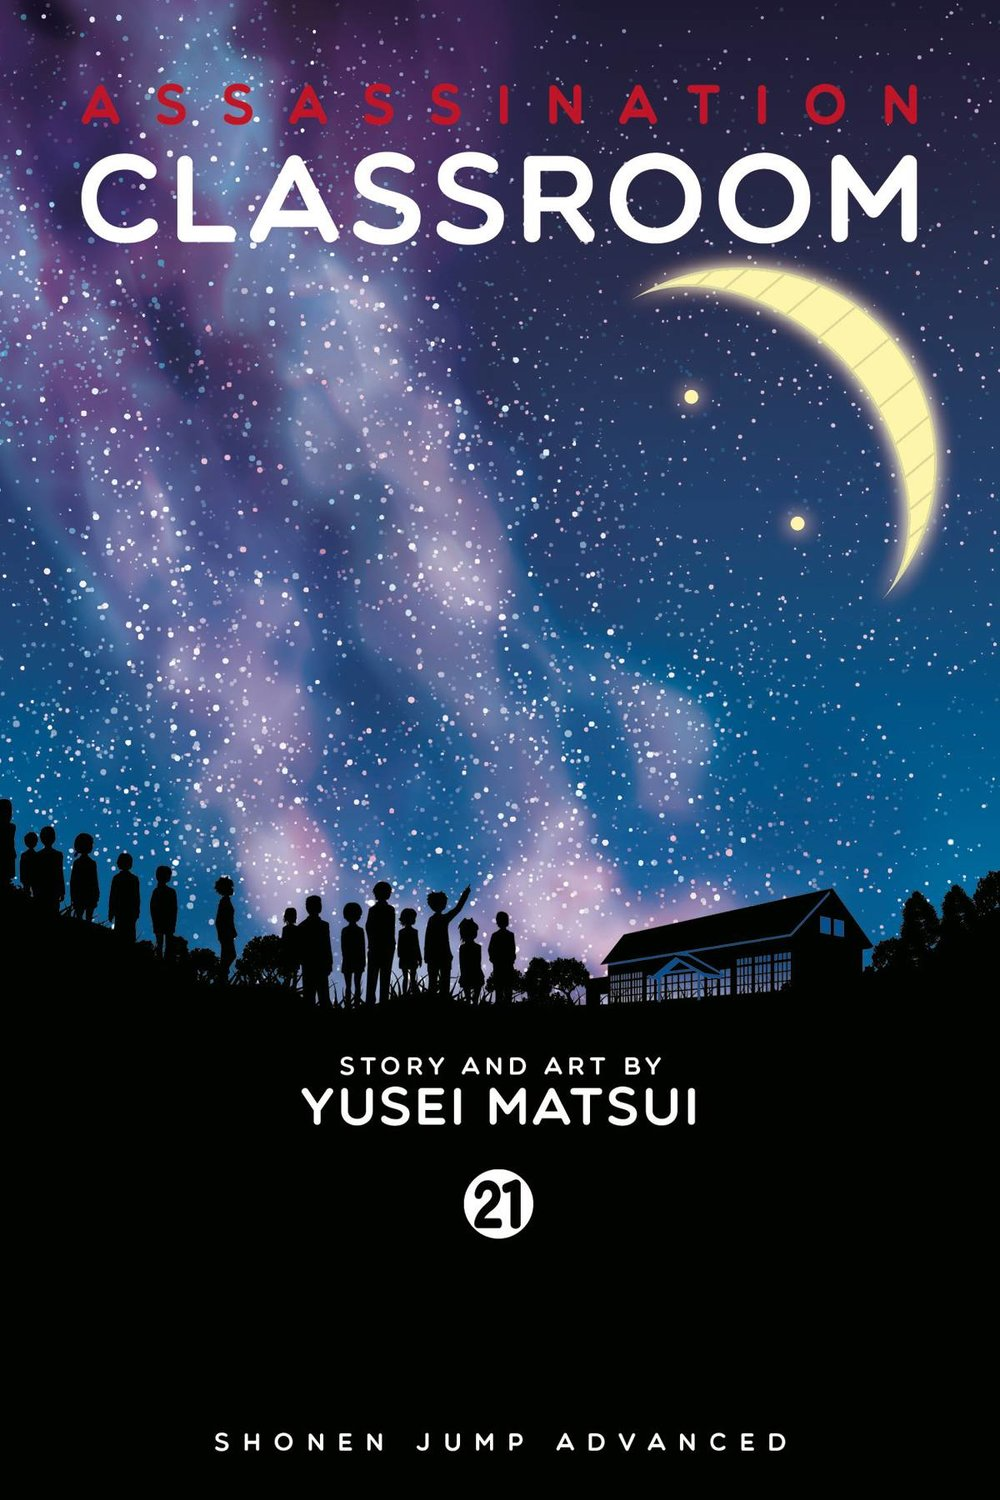 ASSASSINATION CLASSROOM GN VOL 21